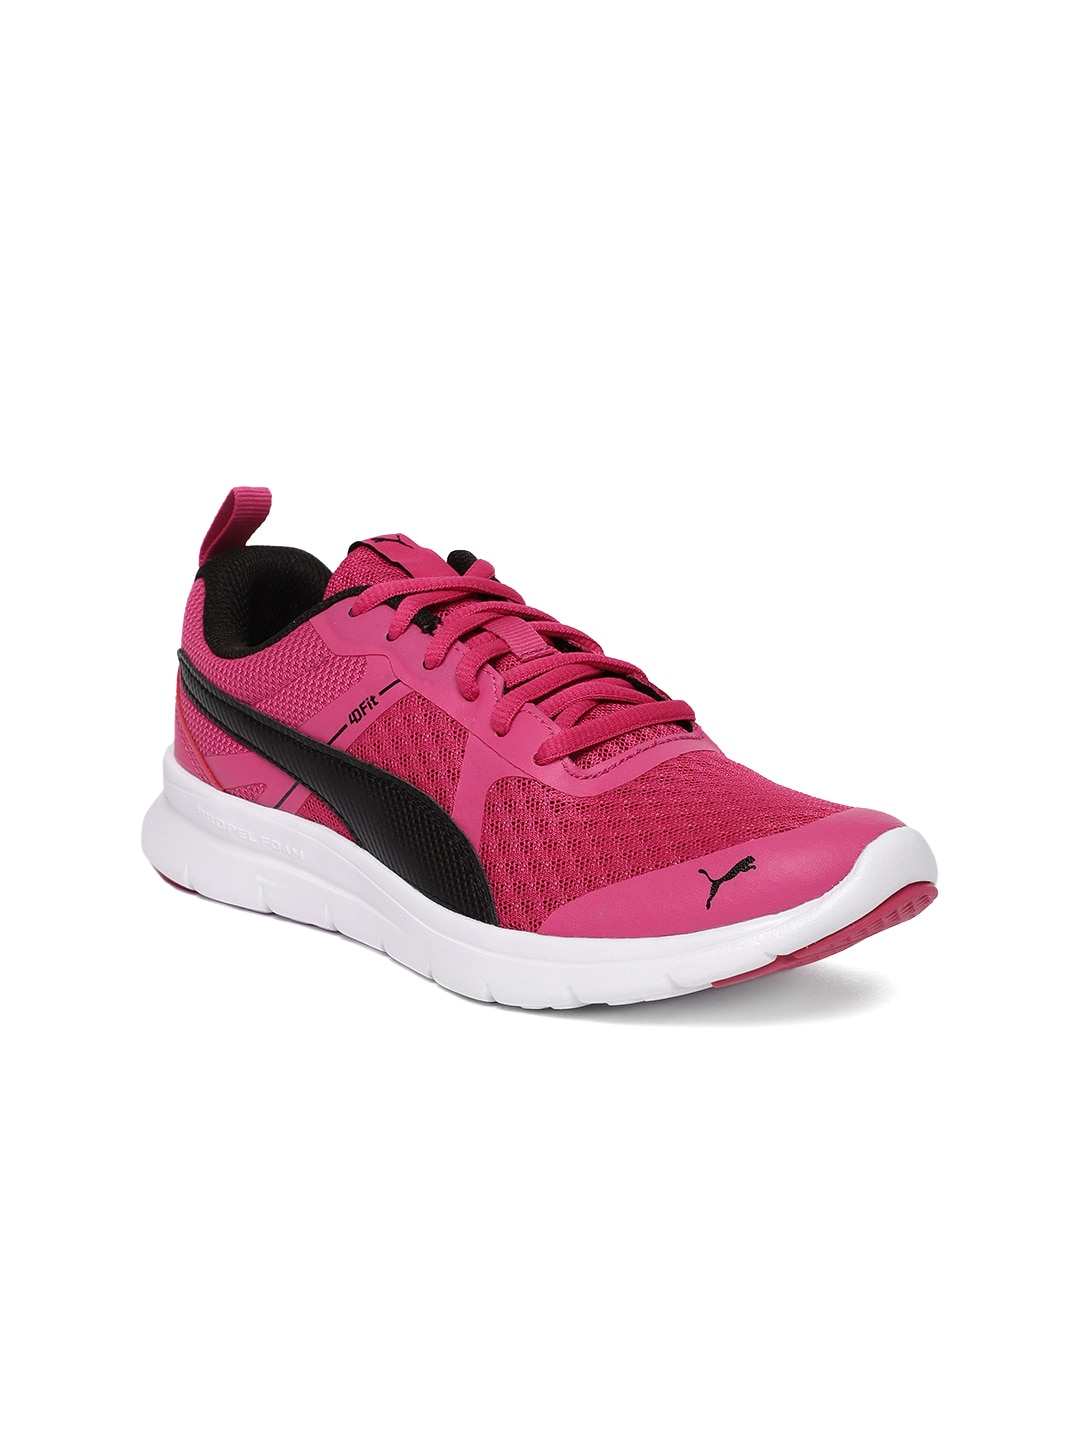 Sports Essentials Shoes - Buy Sports Essentials Shoes online in India 00b6073f9